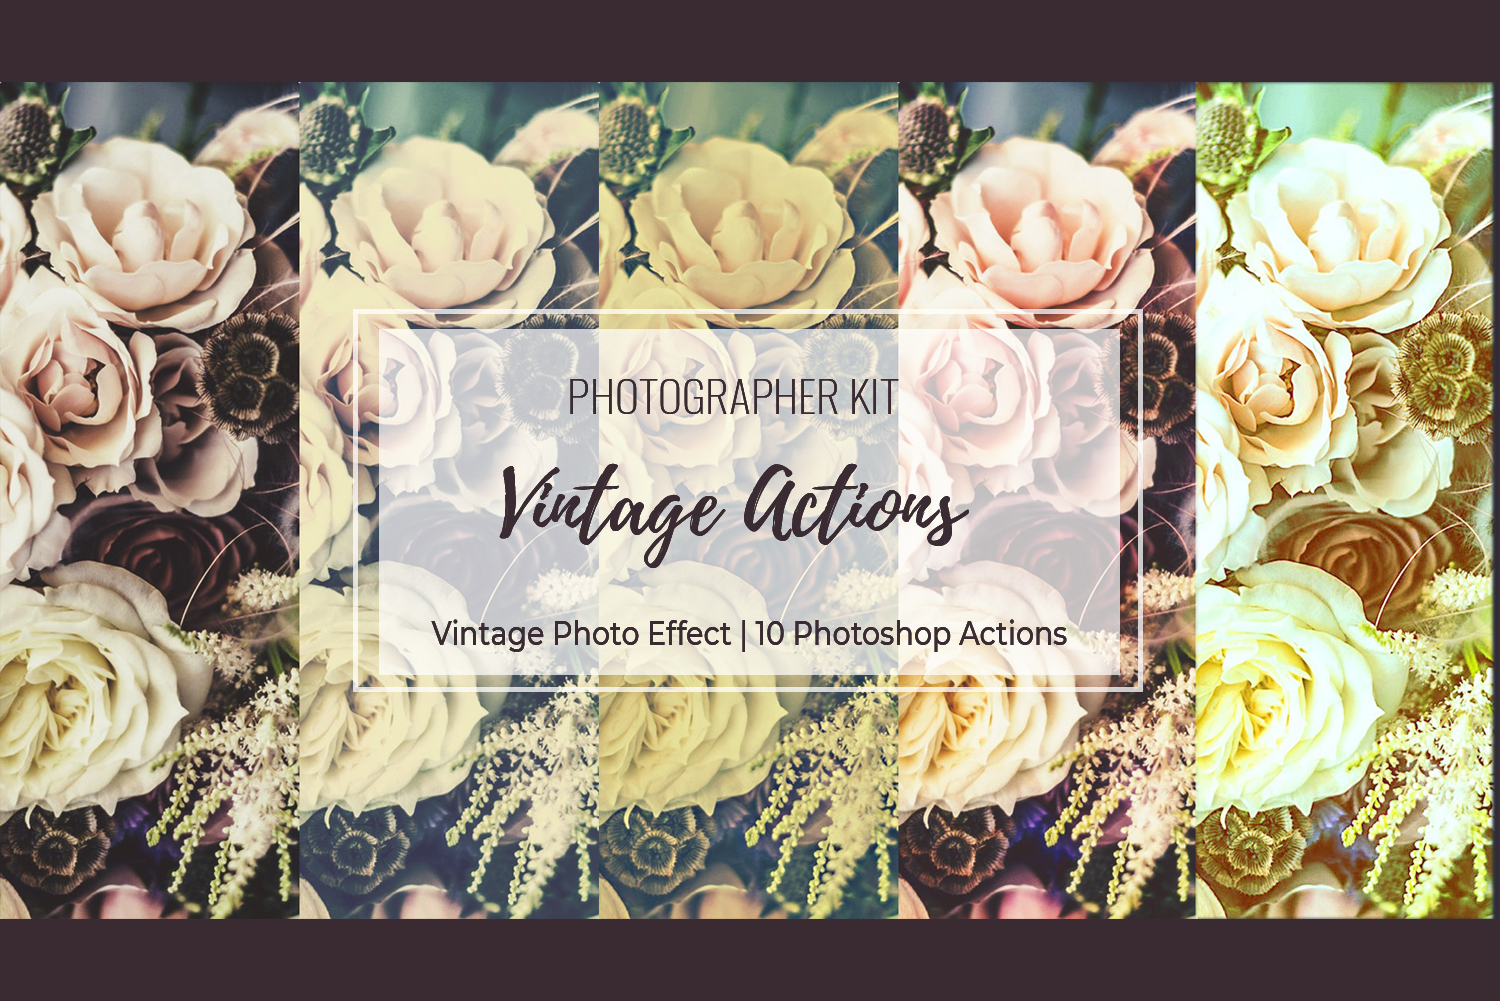 Vintage Photo Effect - 10 PS Actions Kit example image 22